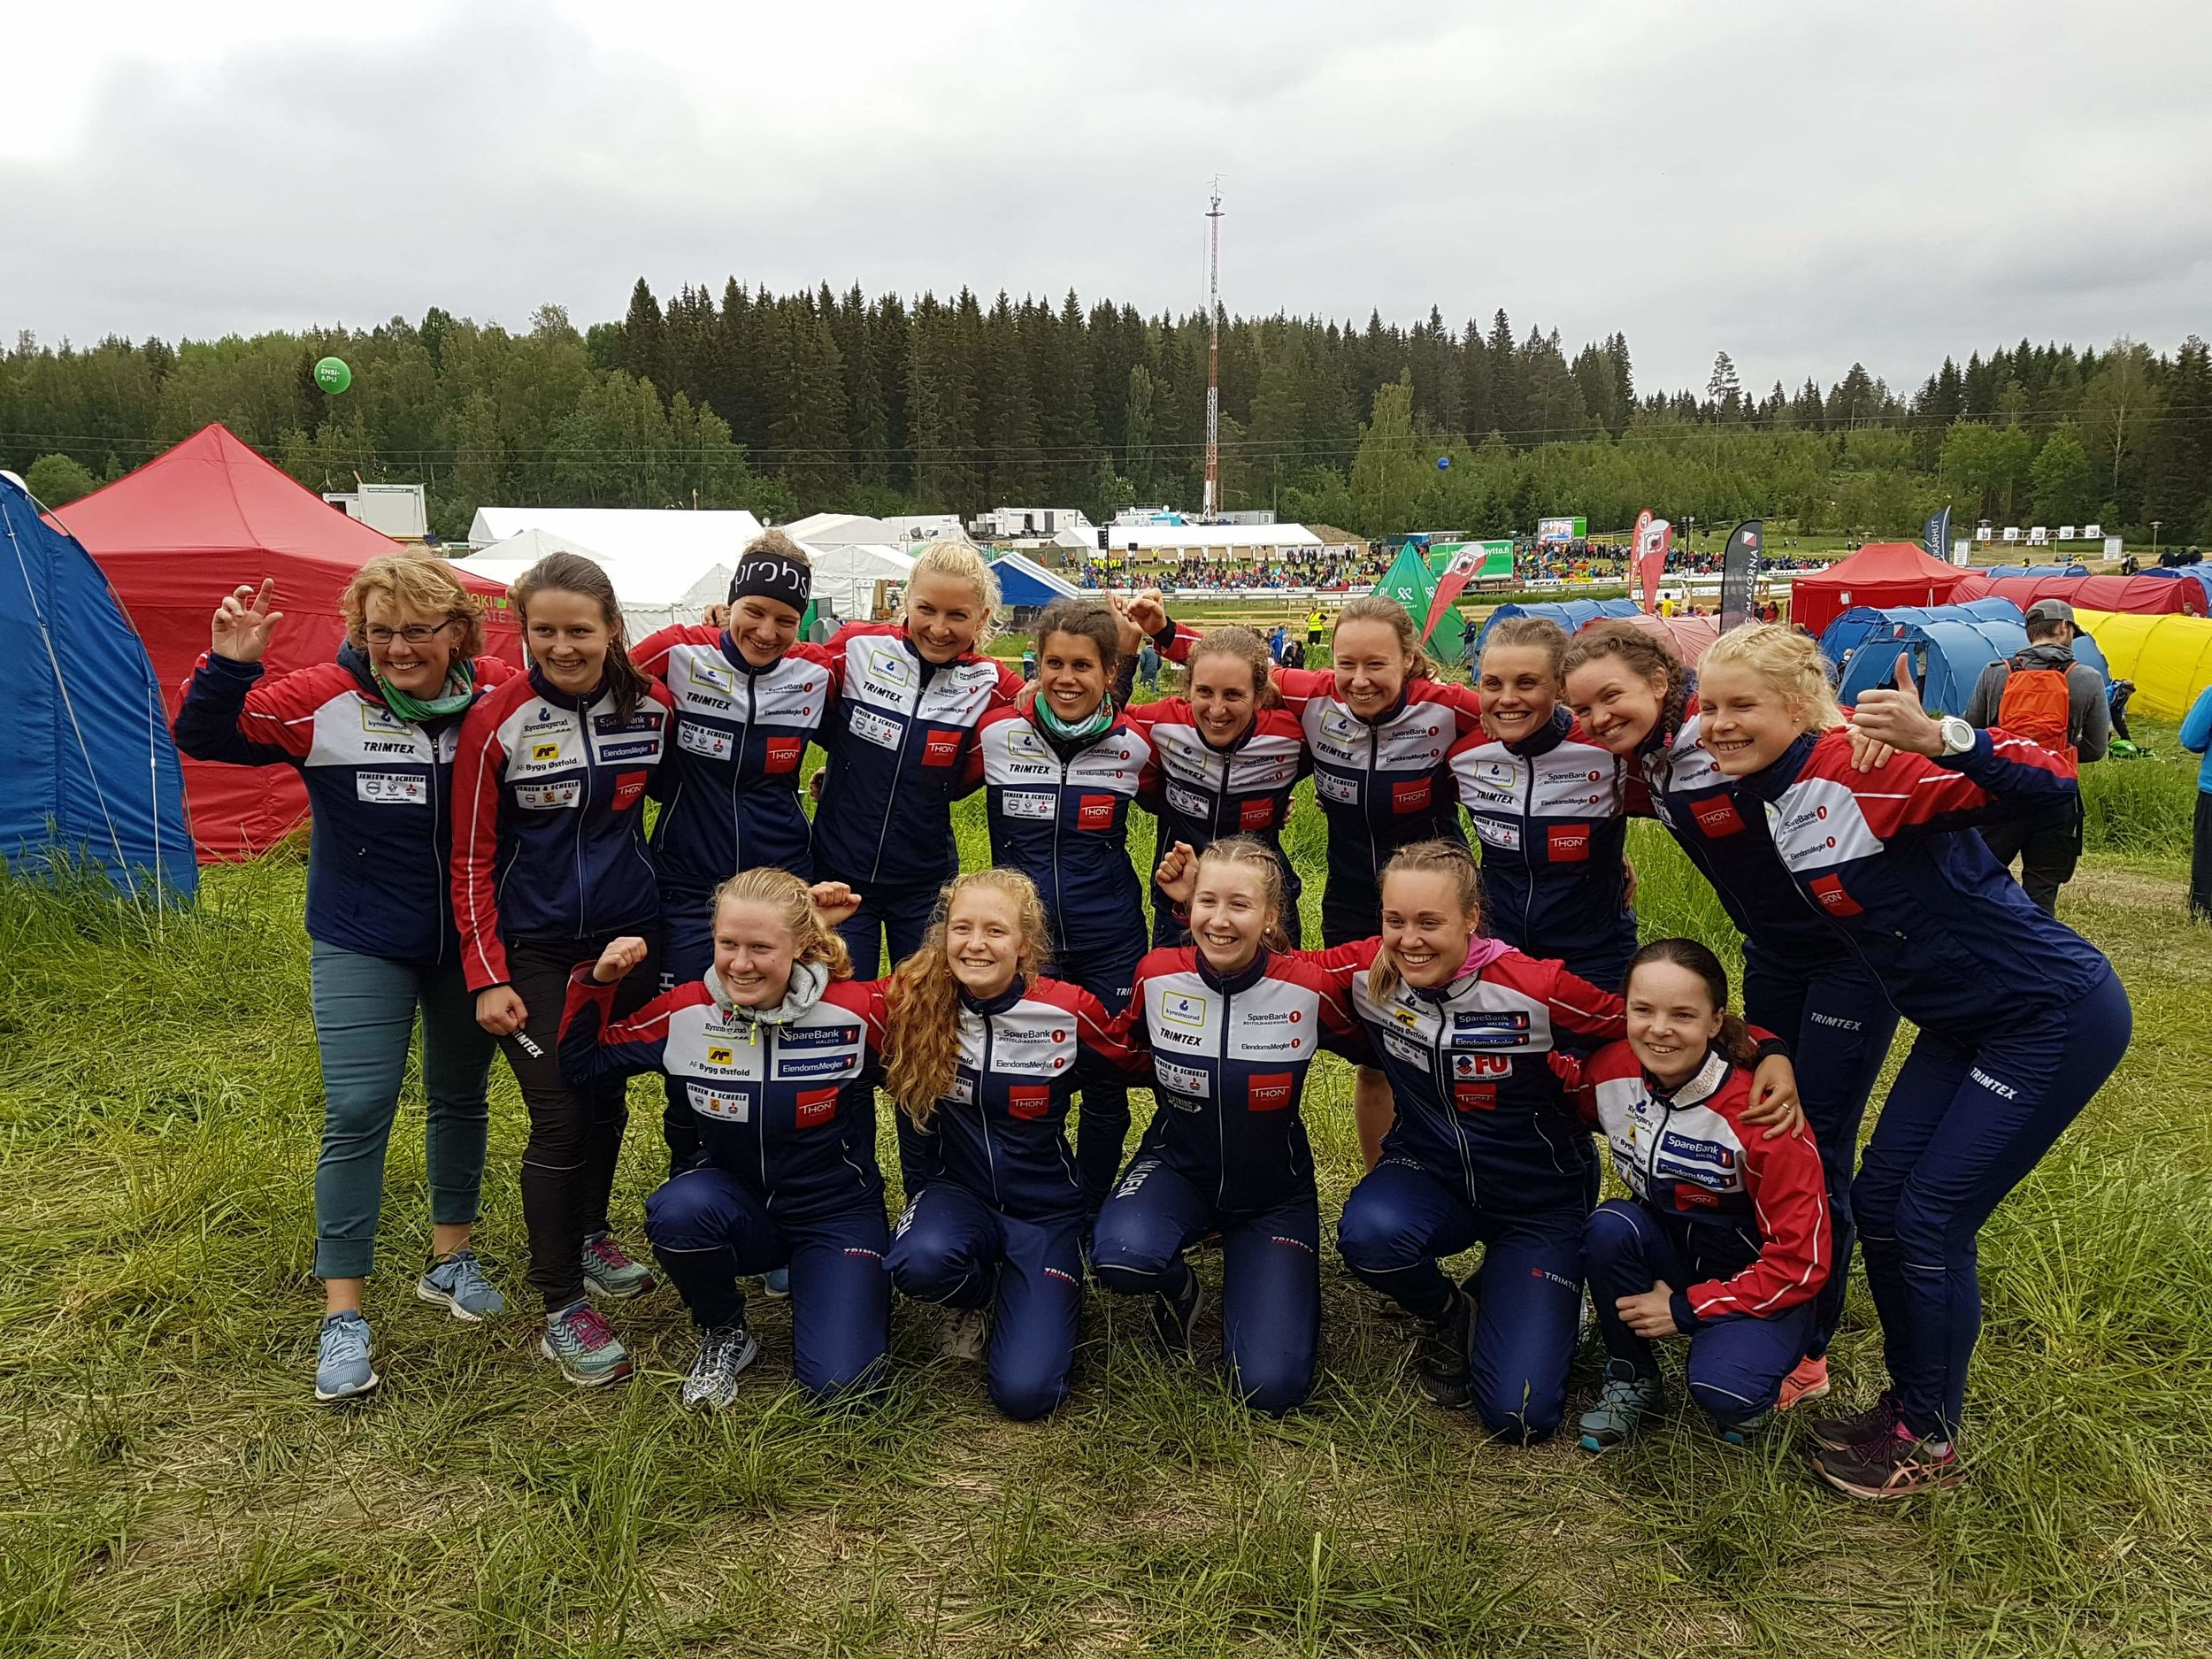 Halden Cool Chicks at Jukola 2019!